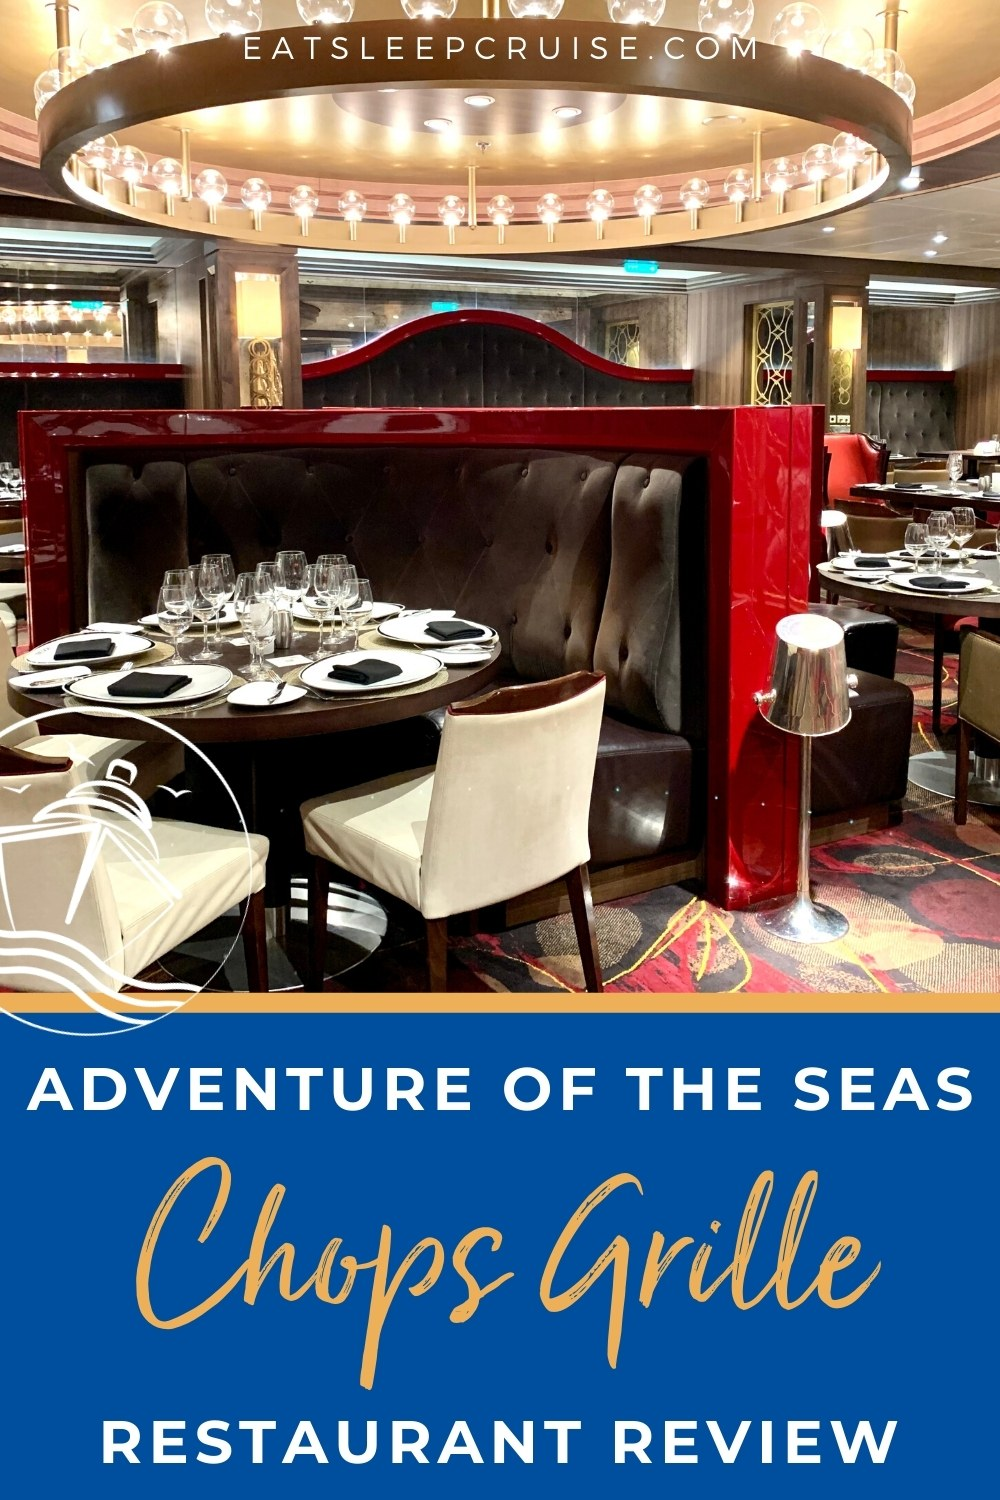 Adventure of the Seas Chops Grille Review